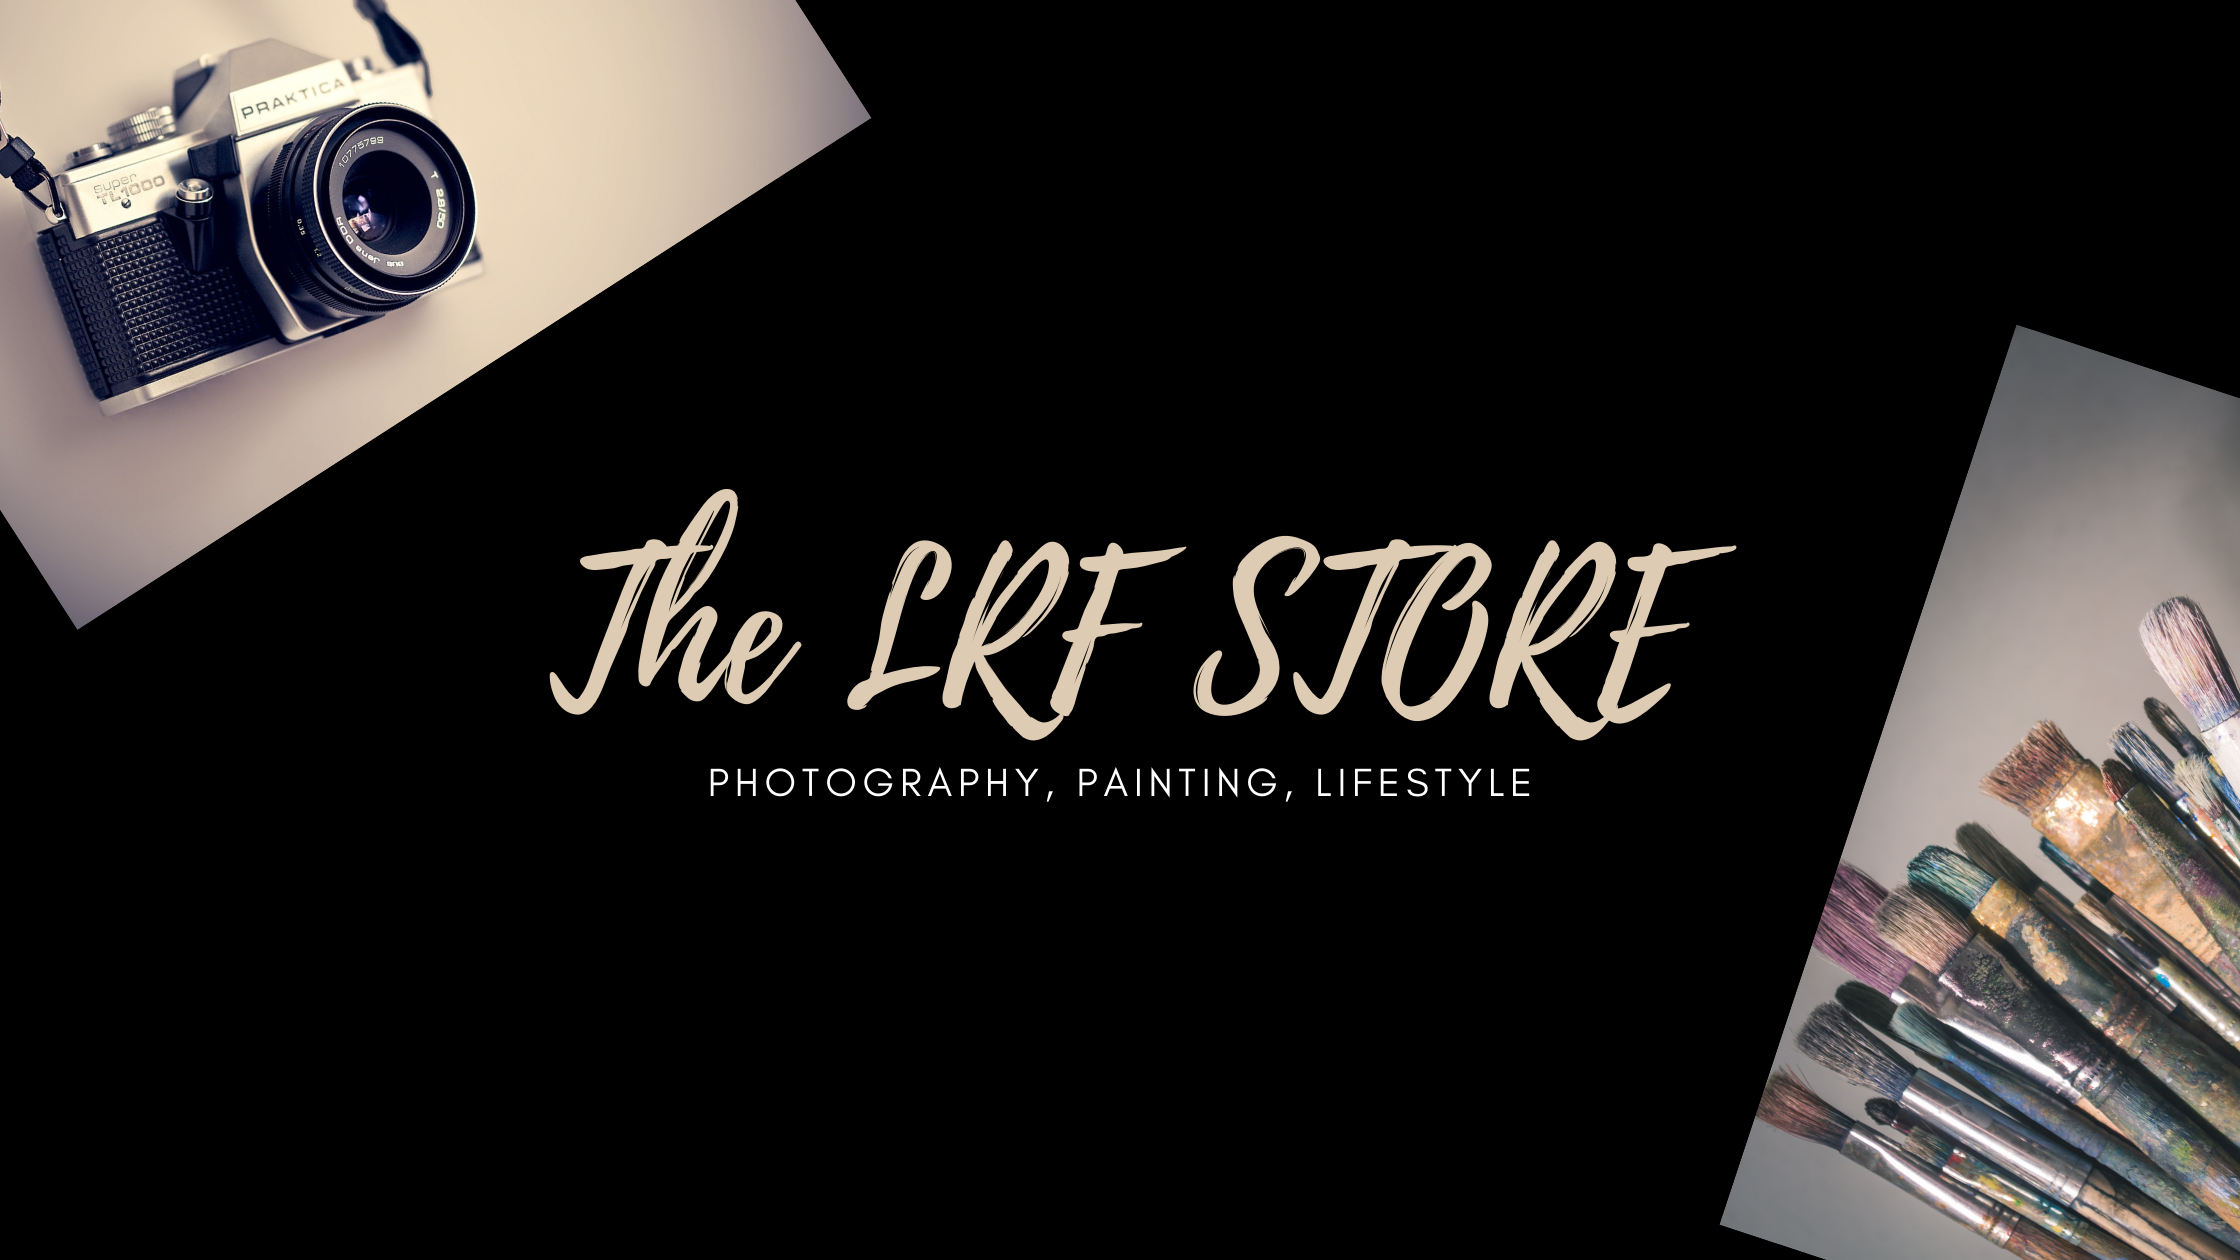 THE LRF STORE